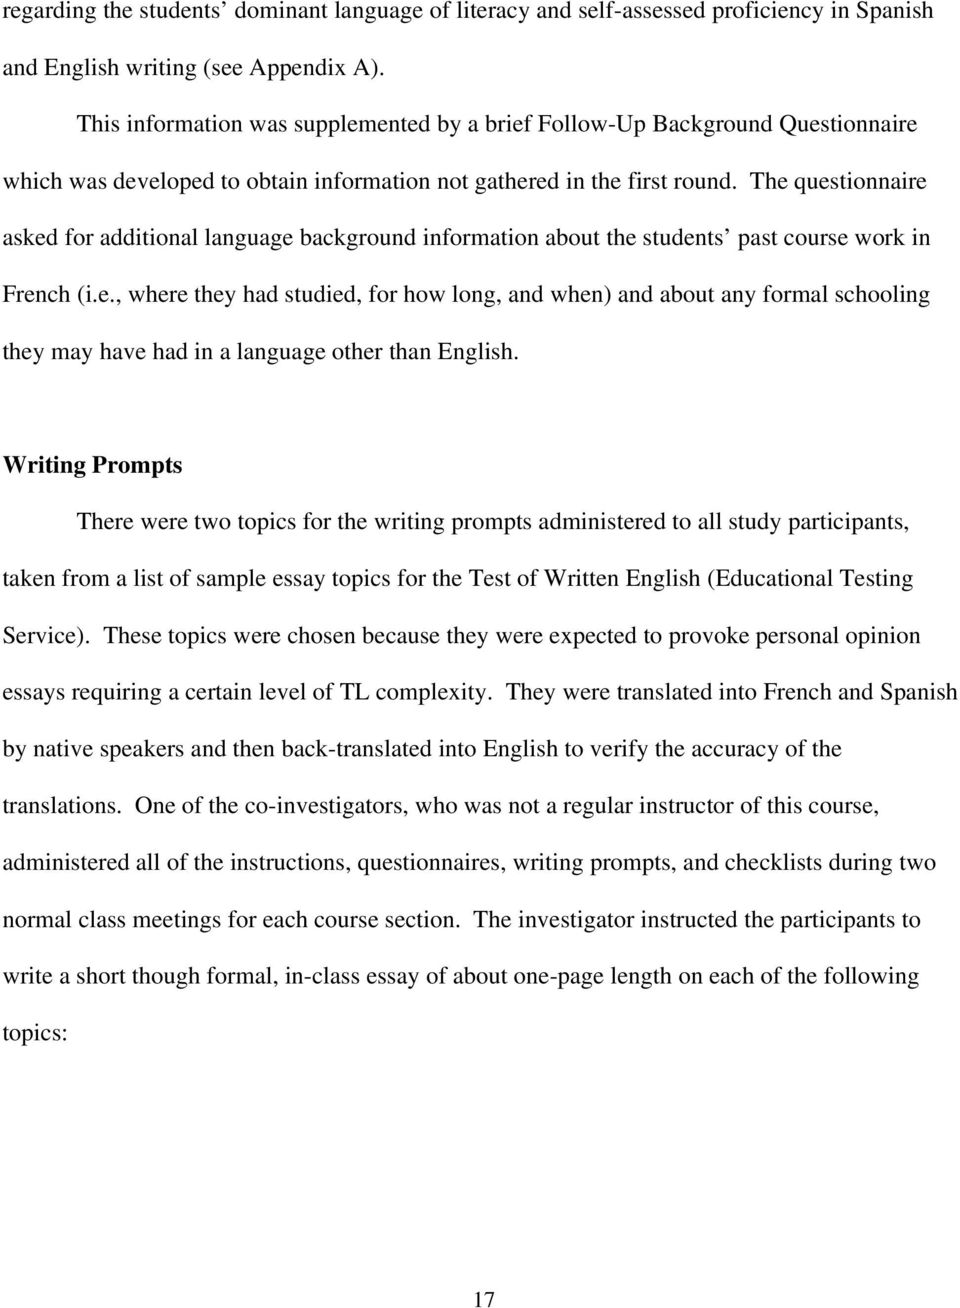 examples of argumentative thesis statements for essays high school  high school application essay samples french language essay topics high school application essay samples french language